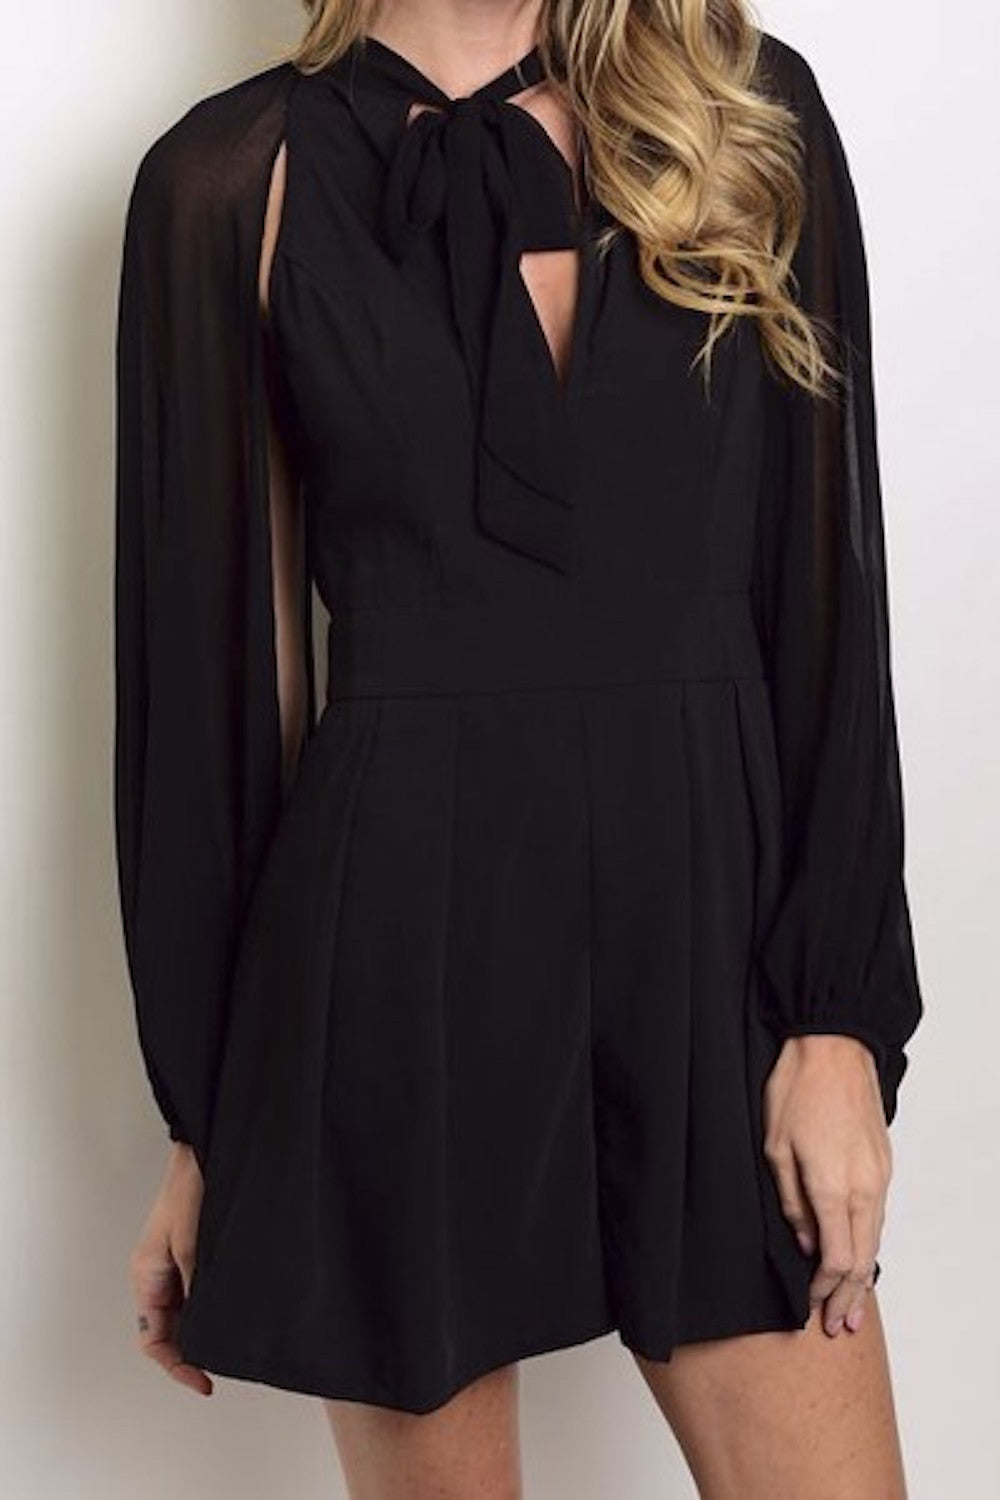 Sheer Chiffon Romper With Plunging Neckline Mixed Intimate Items